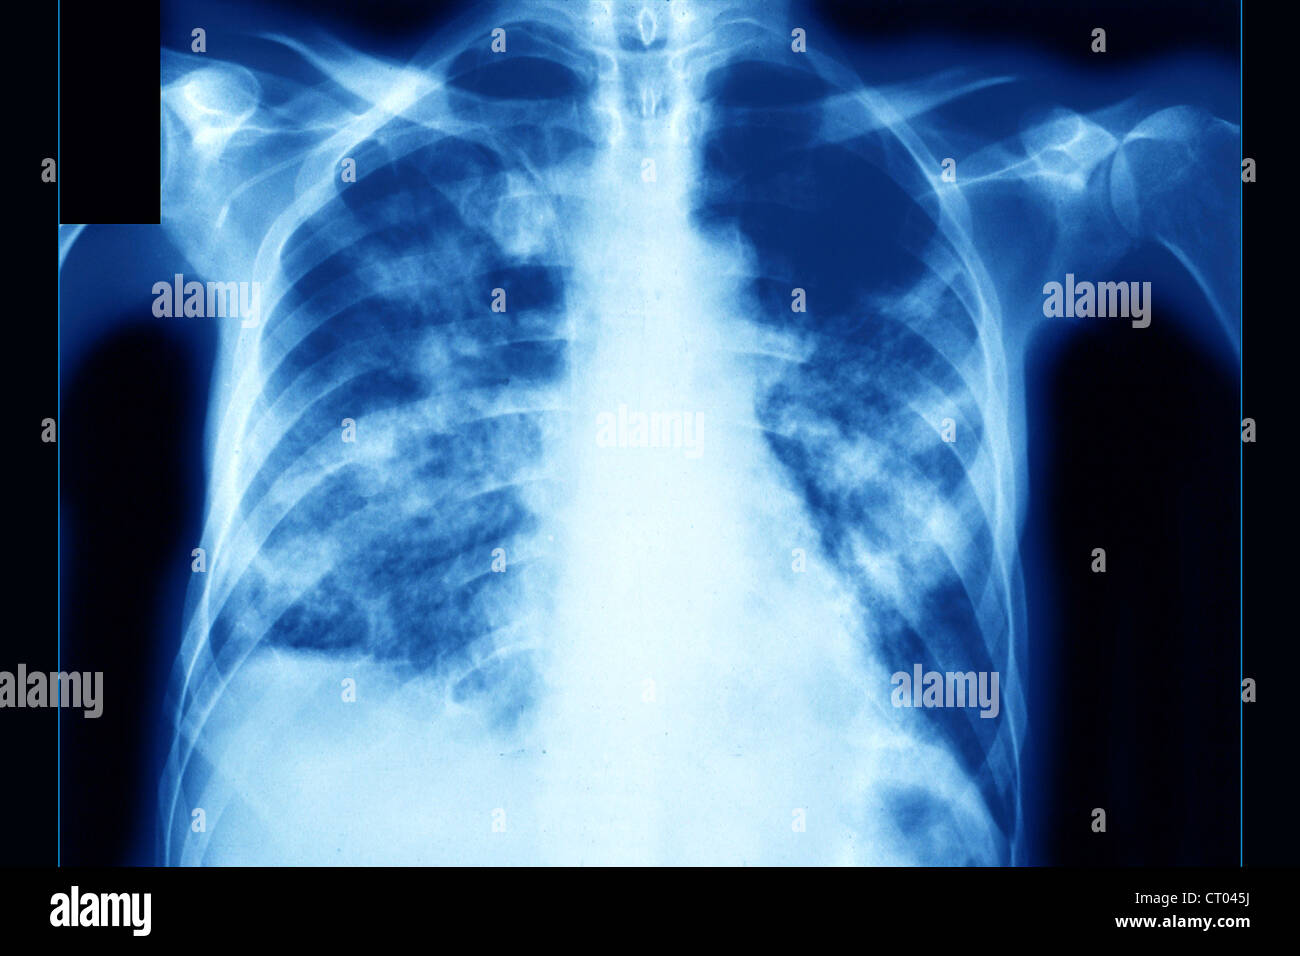 PNEUMONIA, PNEUMOCYSTIS CARINII Stock Photo: 49175774 - Alamy